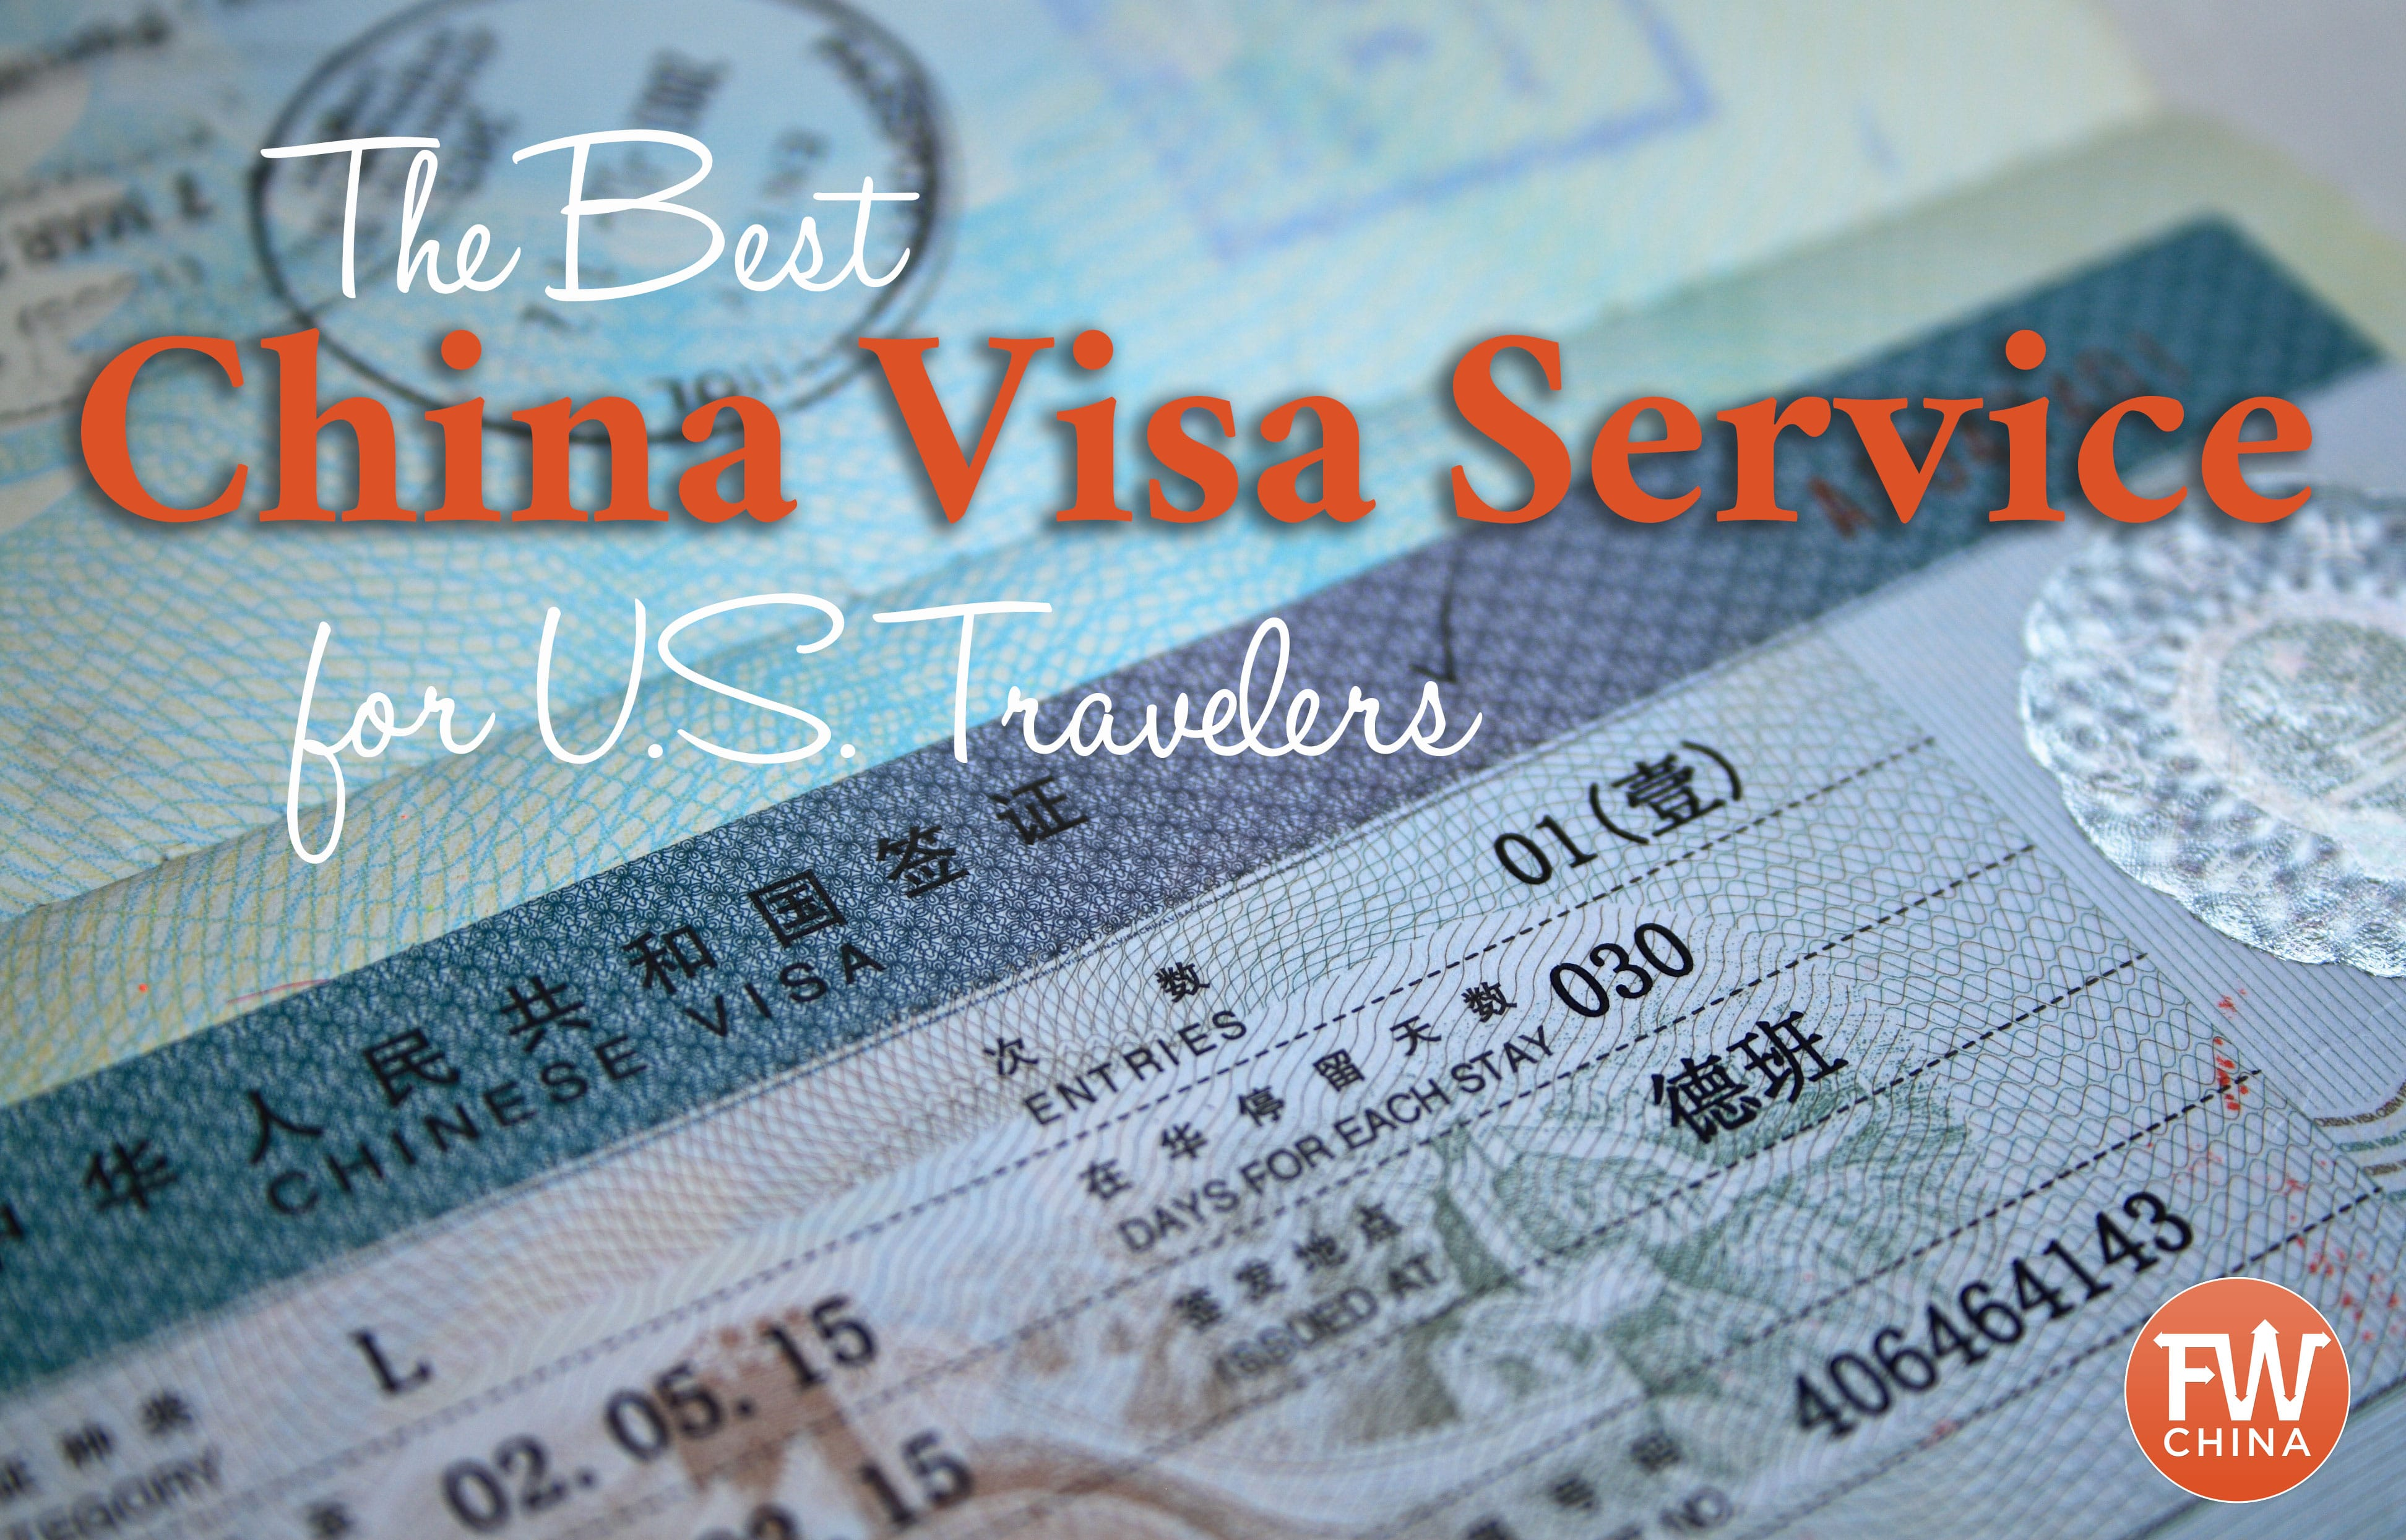 What is the best China visa service for U.S. travelers?